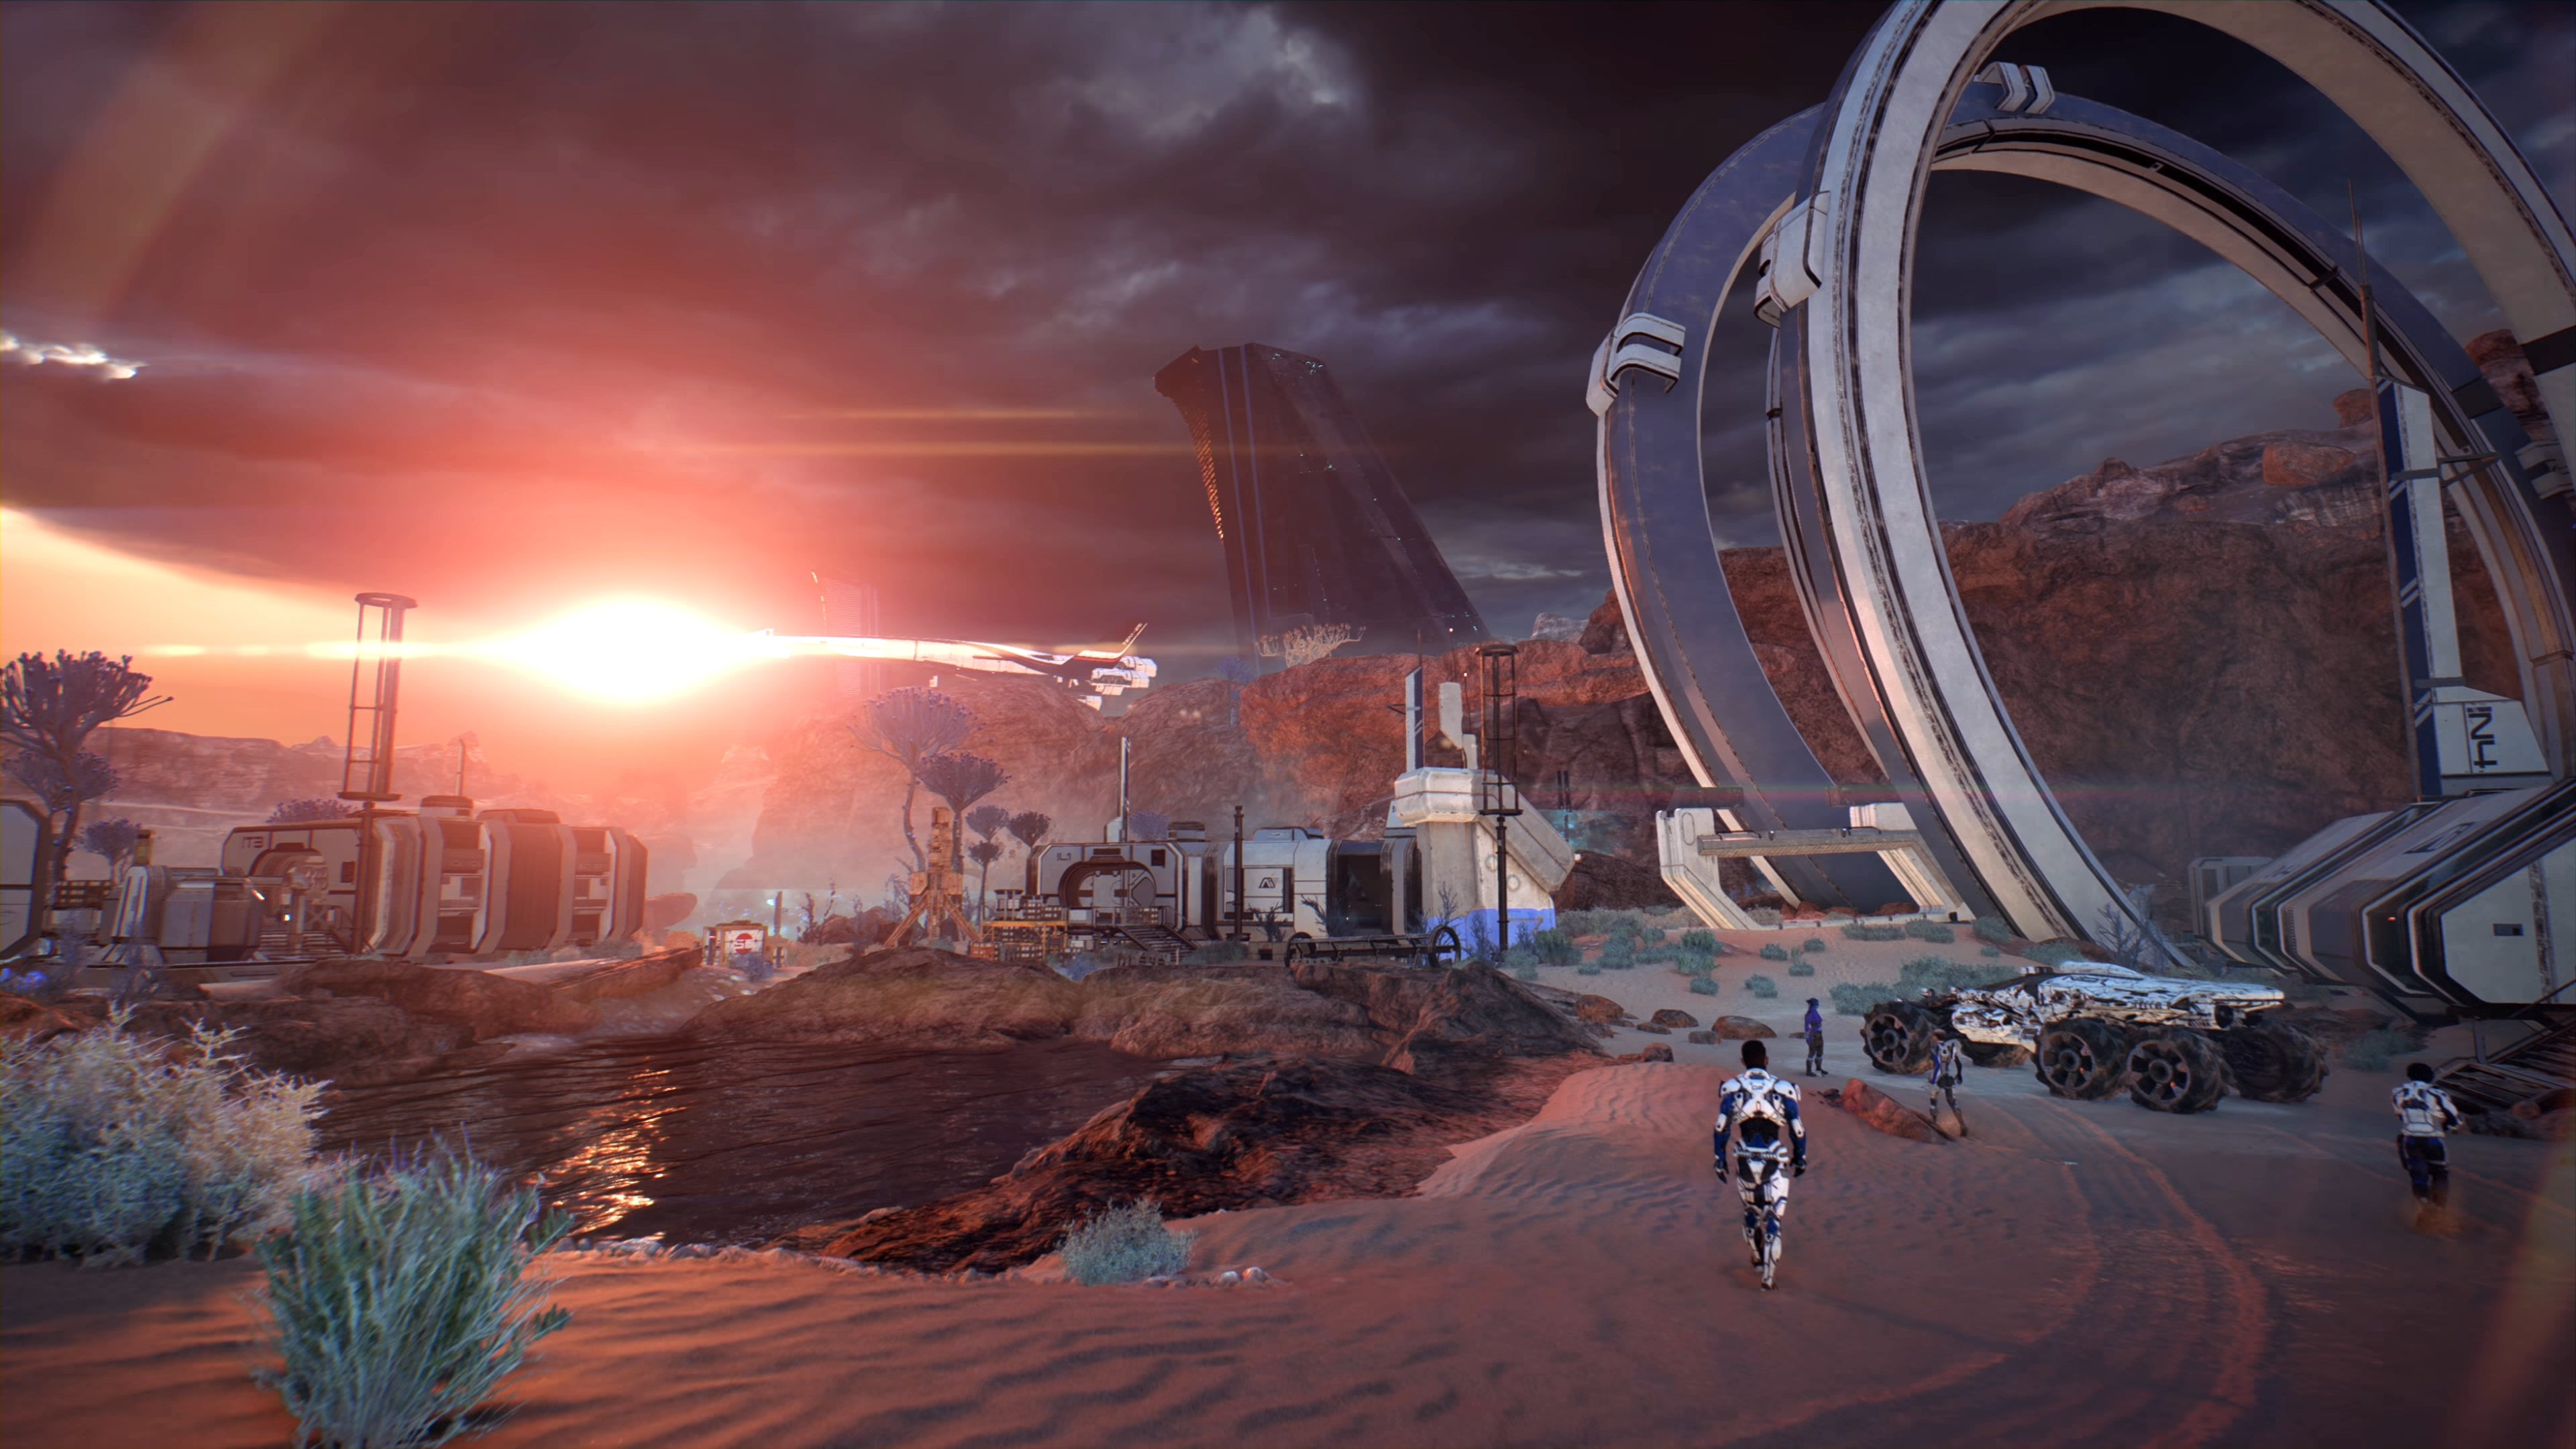 Mass Effect Andromeda 1920x1080: Mass Effect: Andromeda 4k Ultra HD Wallpaper